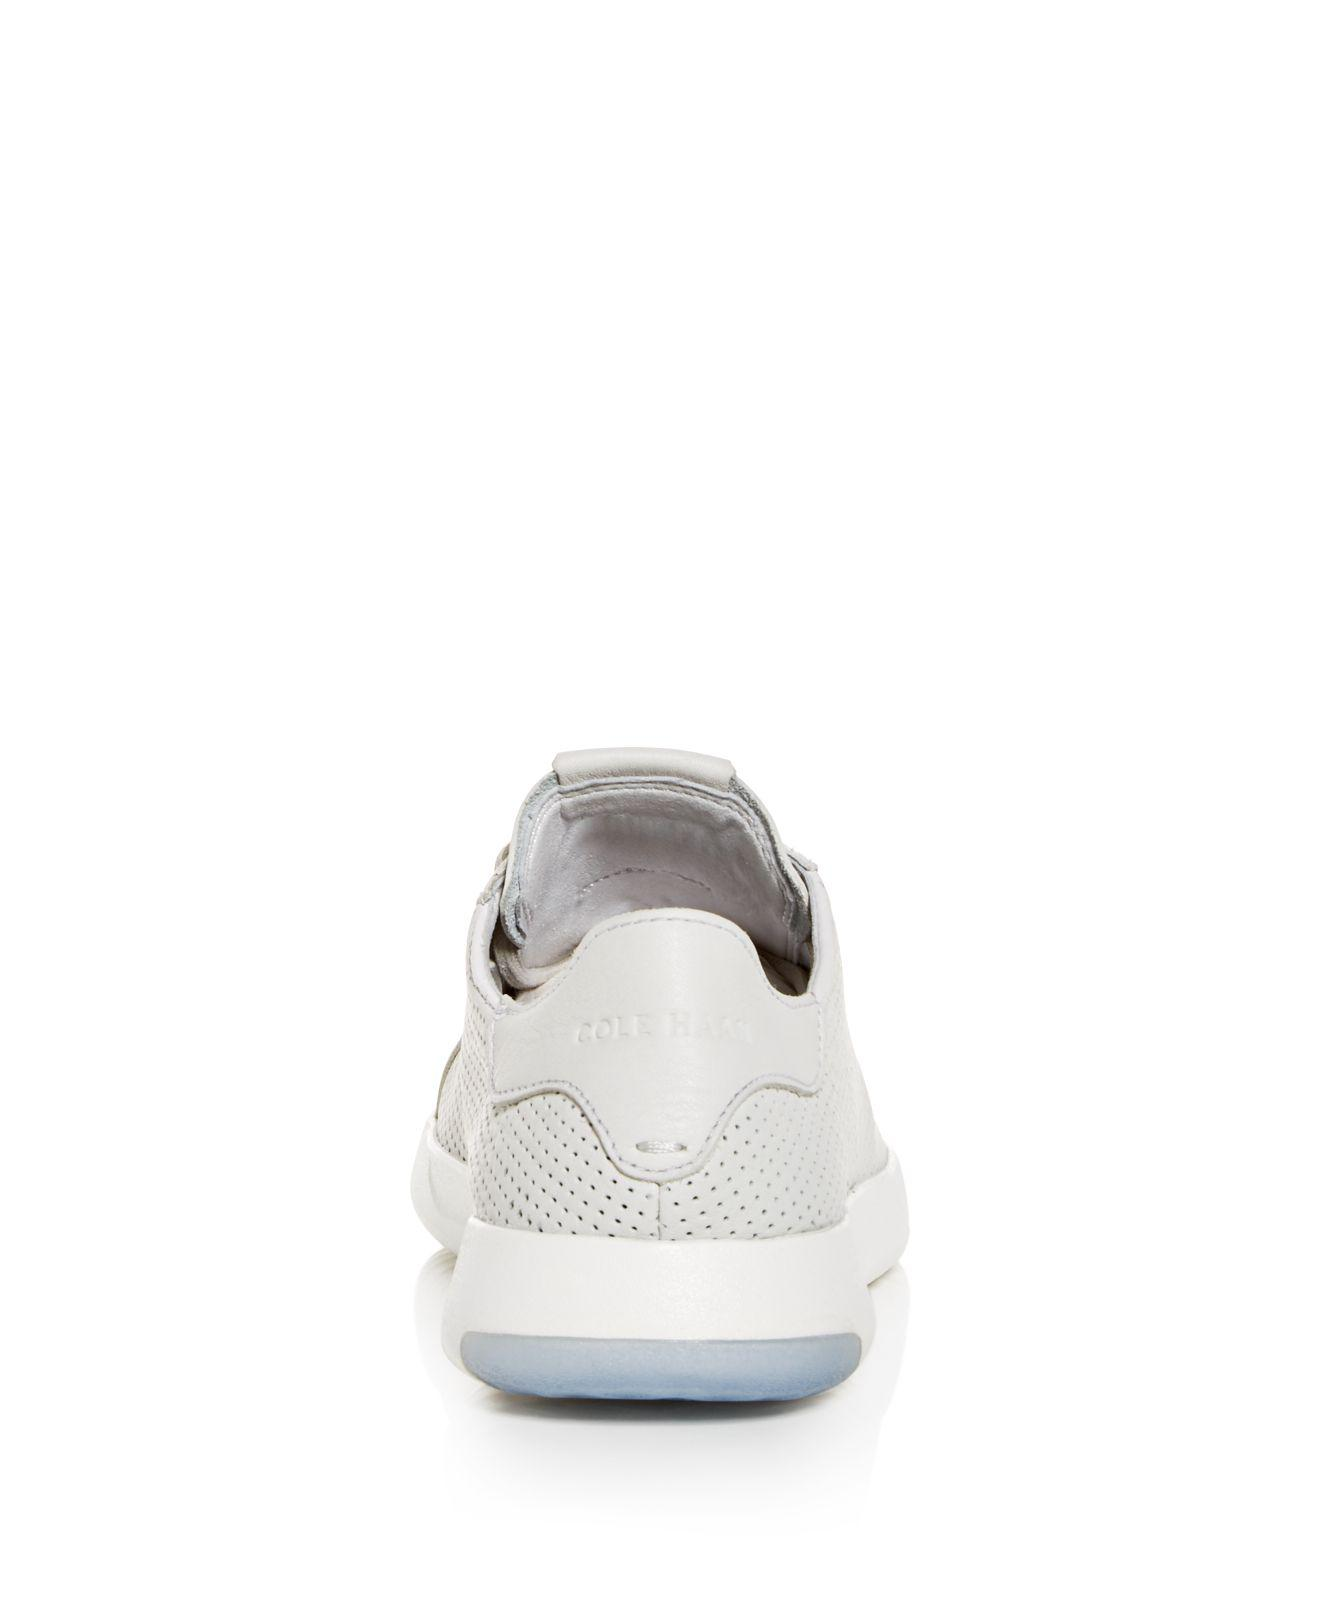 Cole Haan Men's GrandPro Deconstructed Perforated Leather Lace Up Sneakers